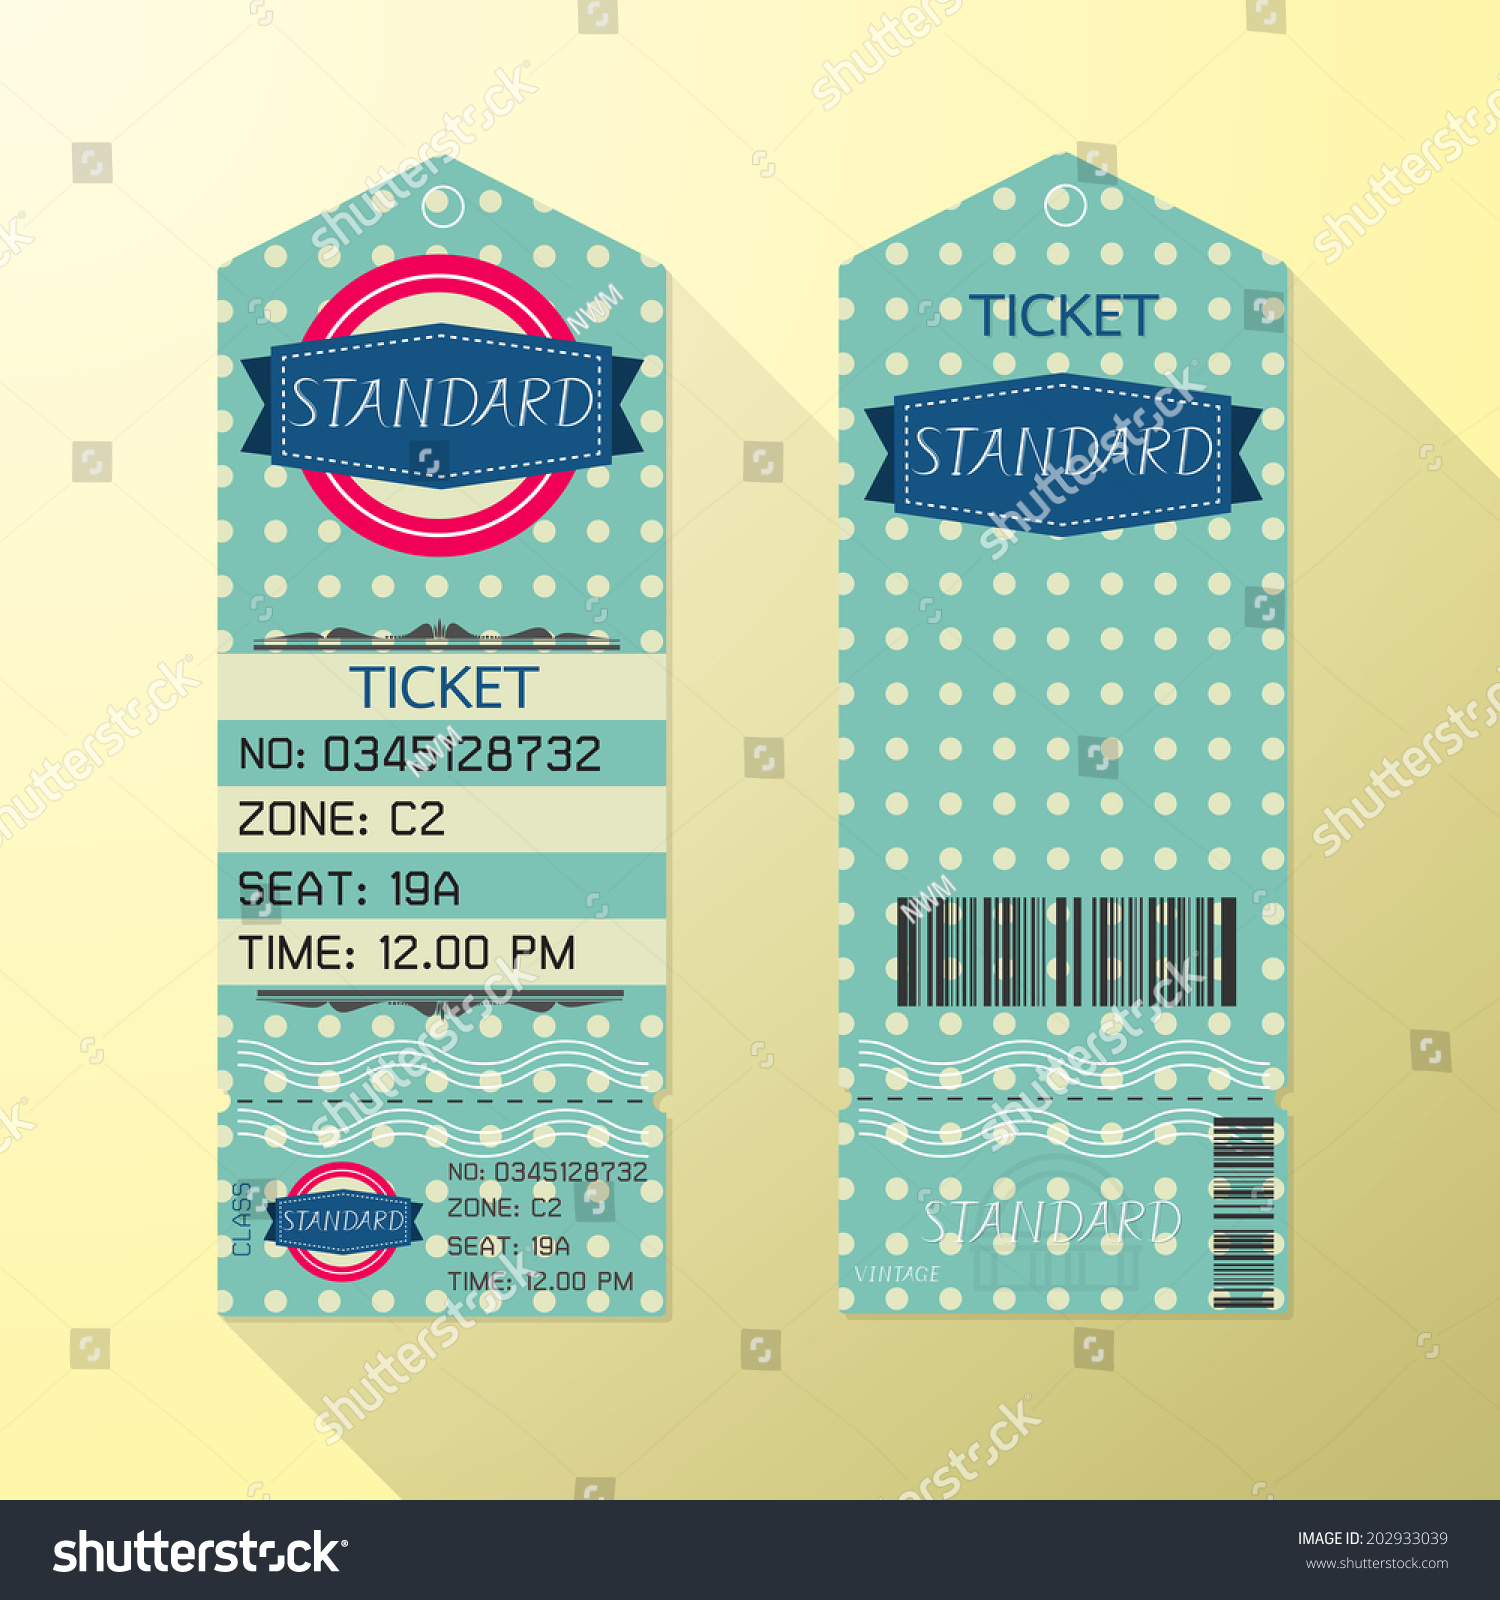 Ticket Design Template Retro Style Standard Class Vector – Ticket Design Template